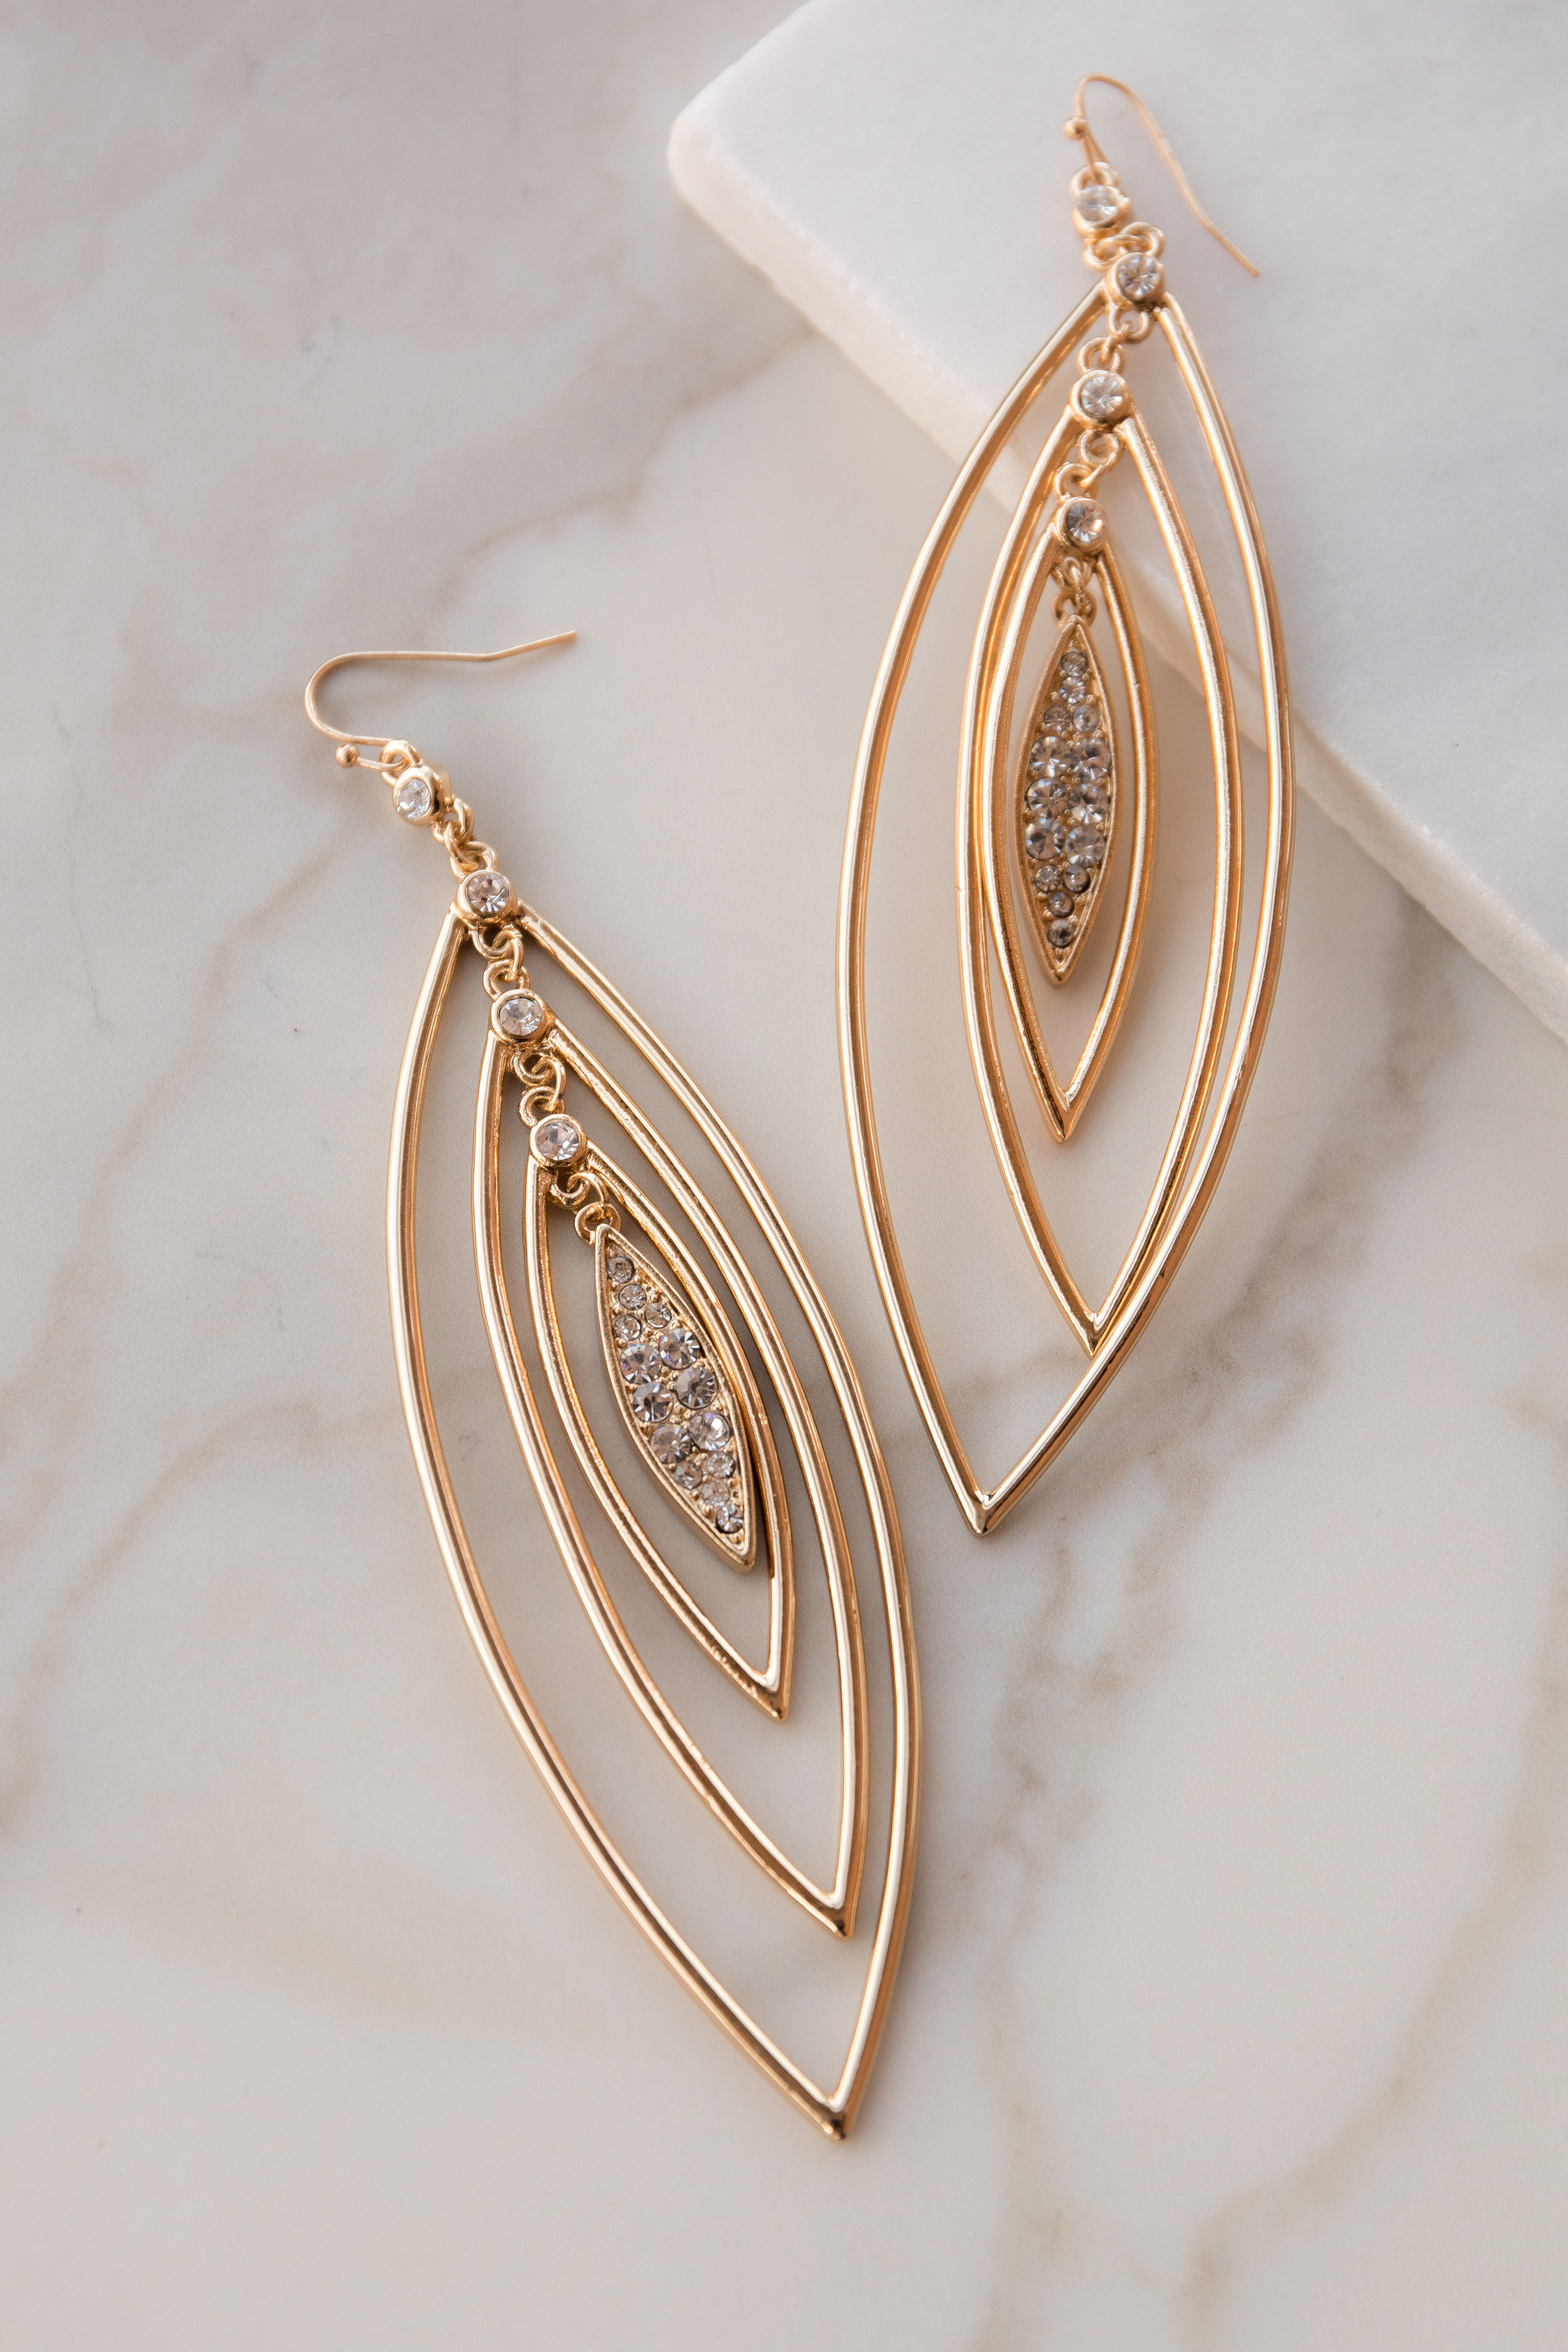 Gold Long Layered Oval Earrings with Jewel Details